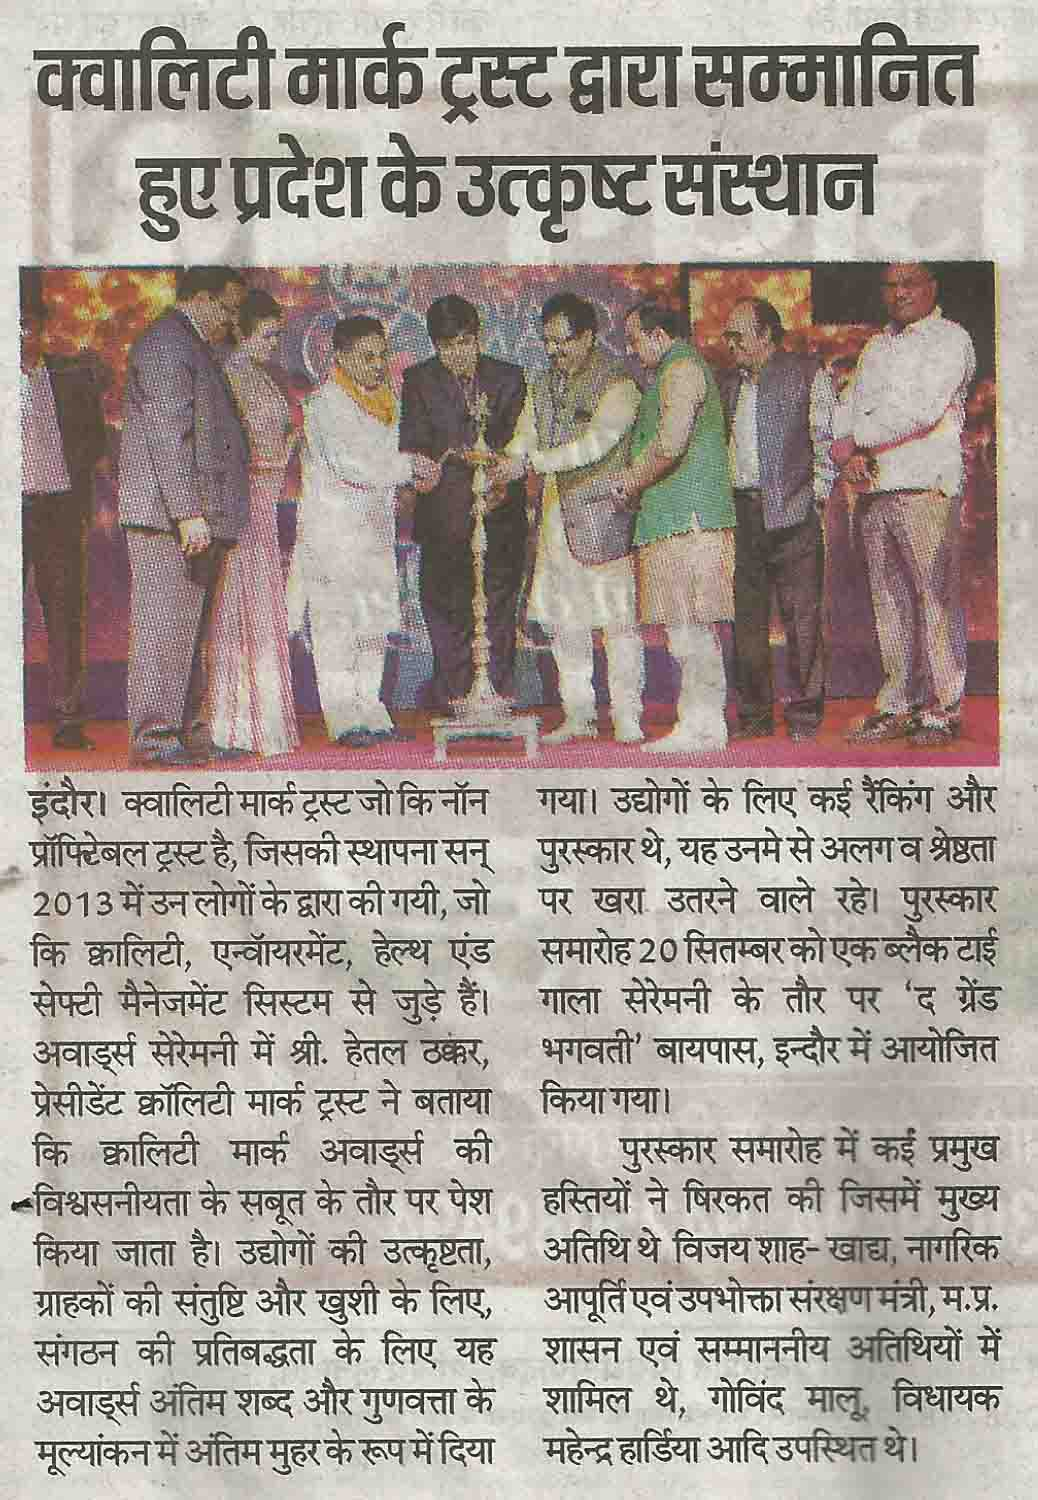 6pm_Indore  21 September 2015